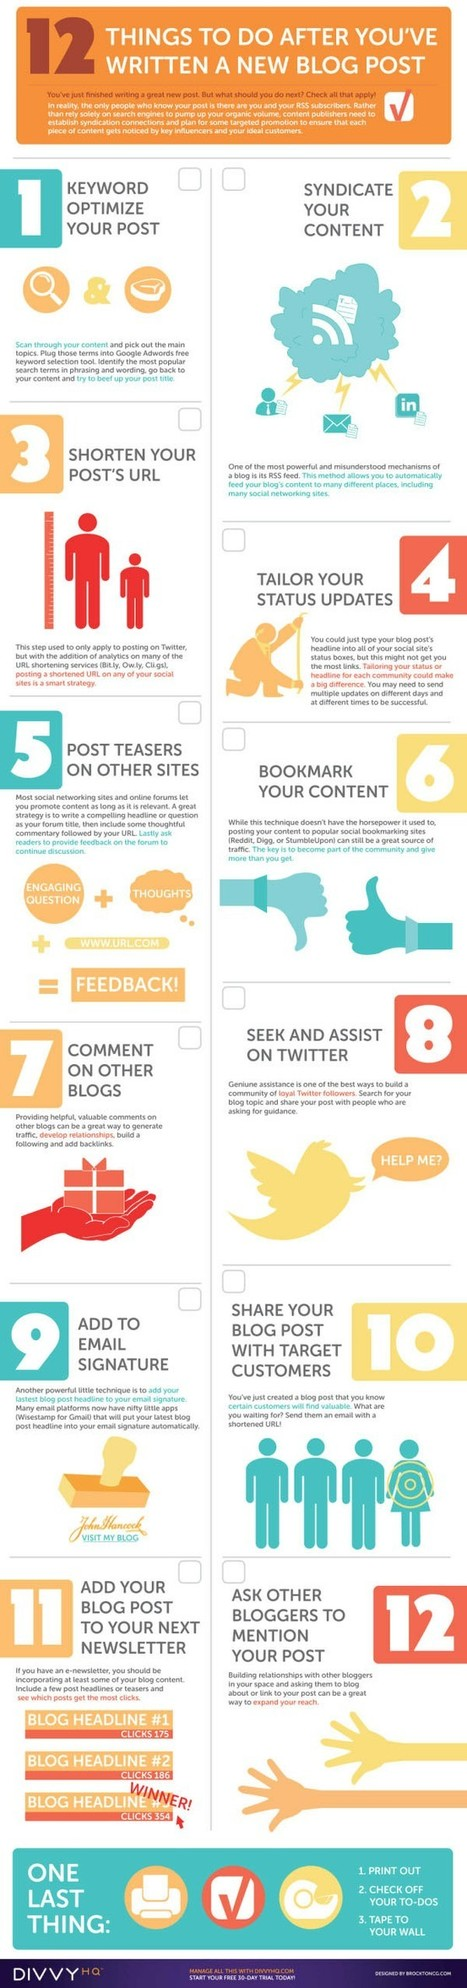 12 Killer Steps to optimize & promote your blog post | SEO-SMO.net | Scoop.it